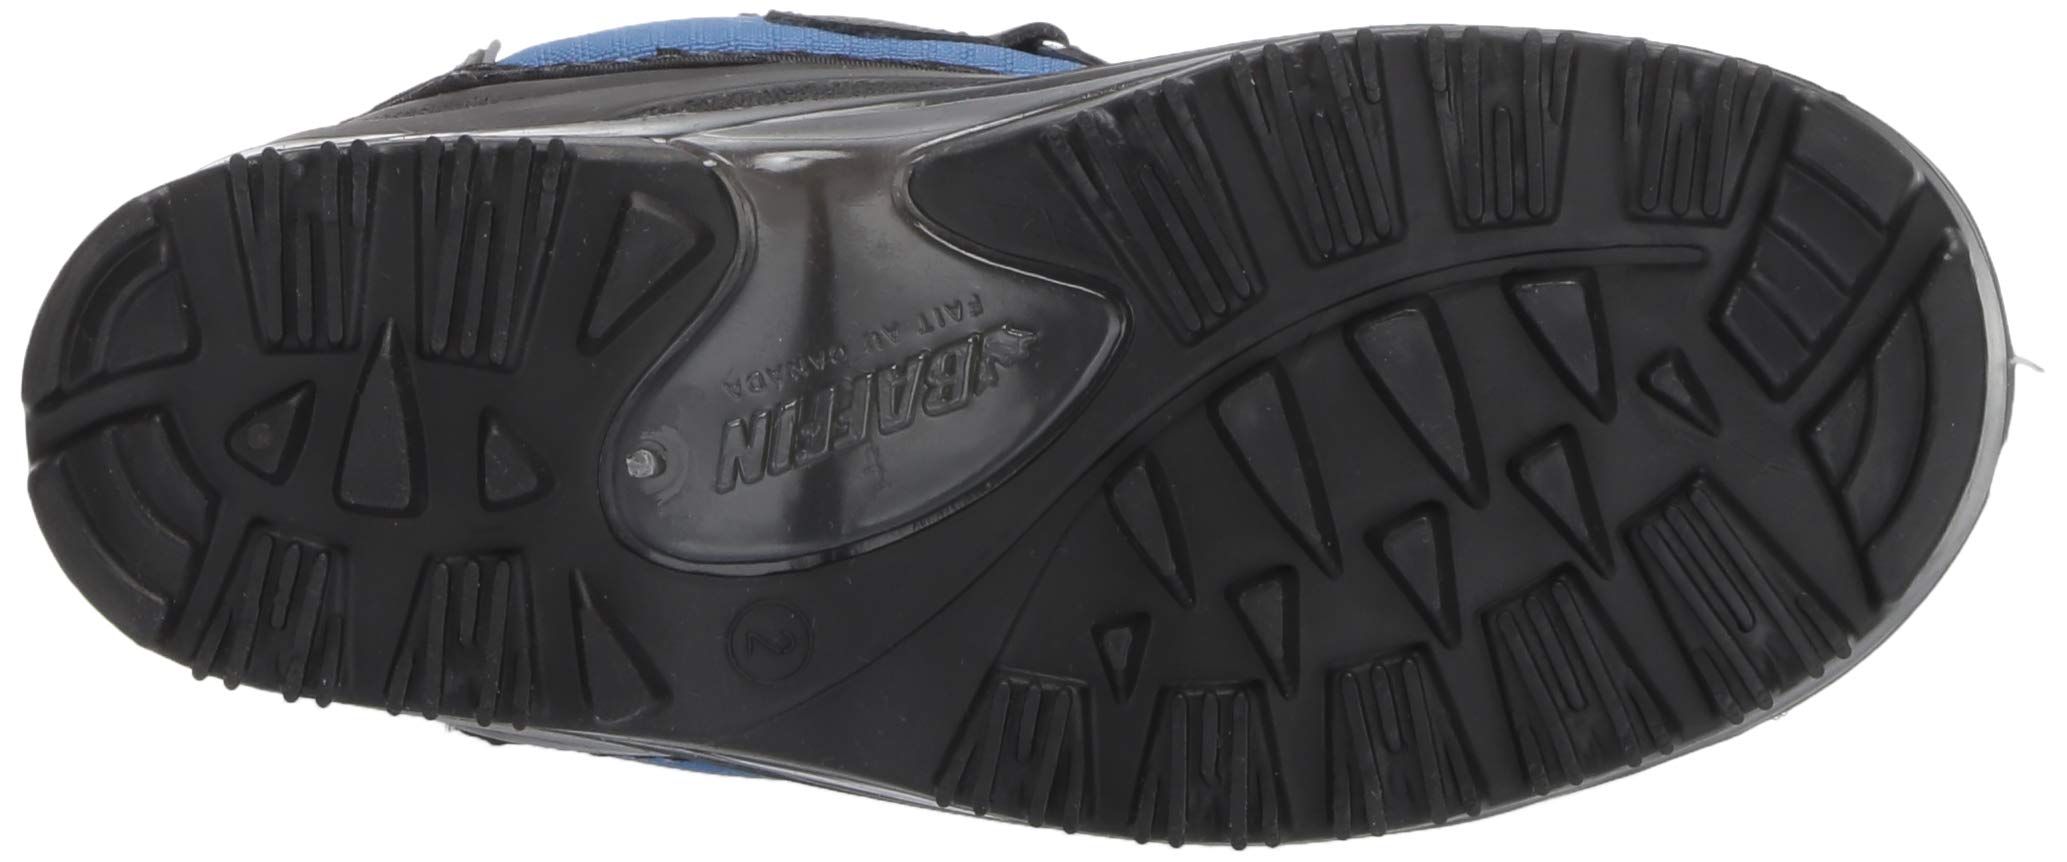 Baffin Unisex SNOWPACK Snow Boot, Blue, 2 Youth US Little Kid by Baffin (Image #3)